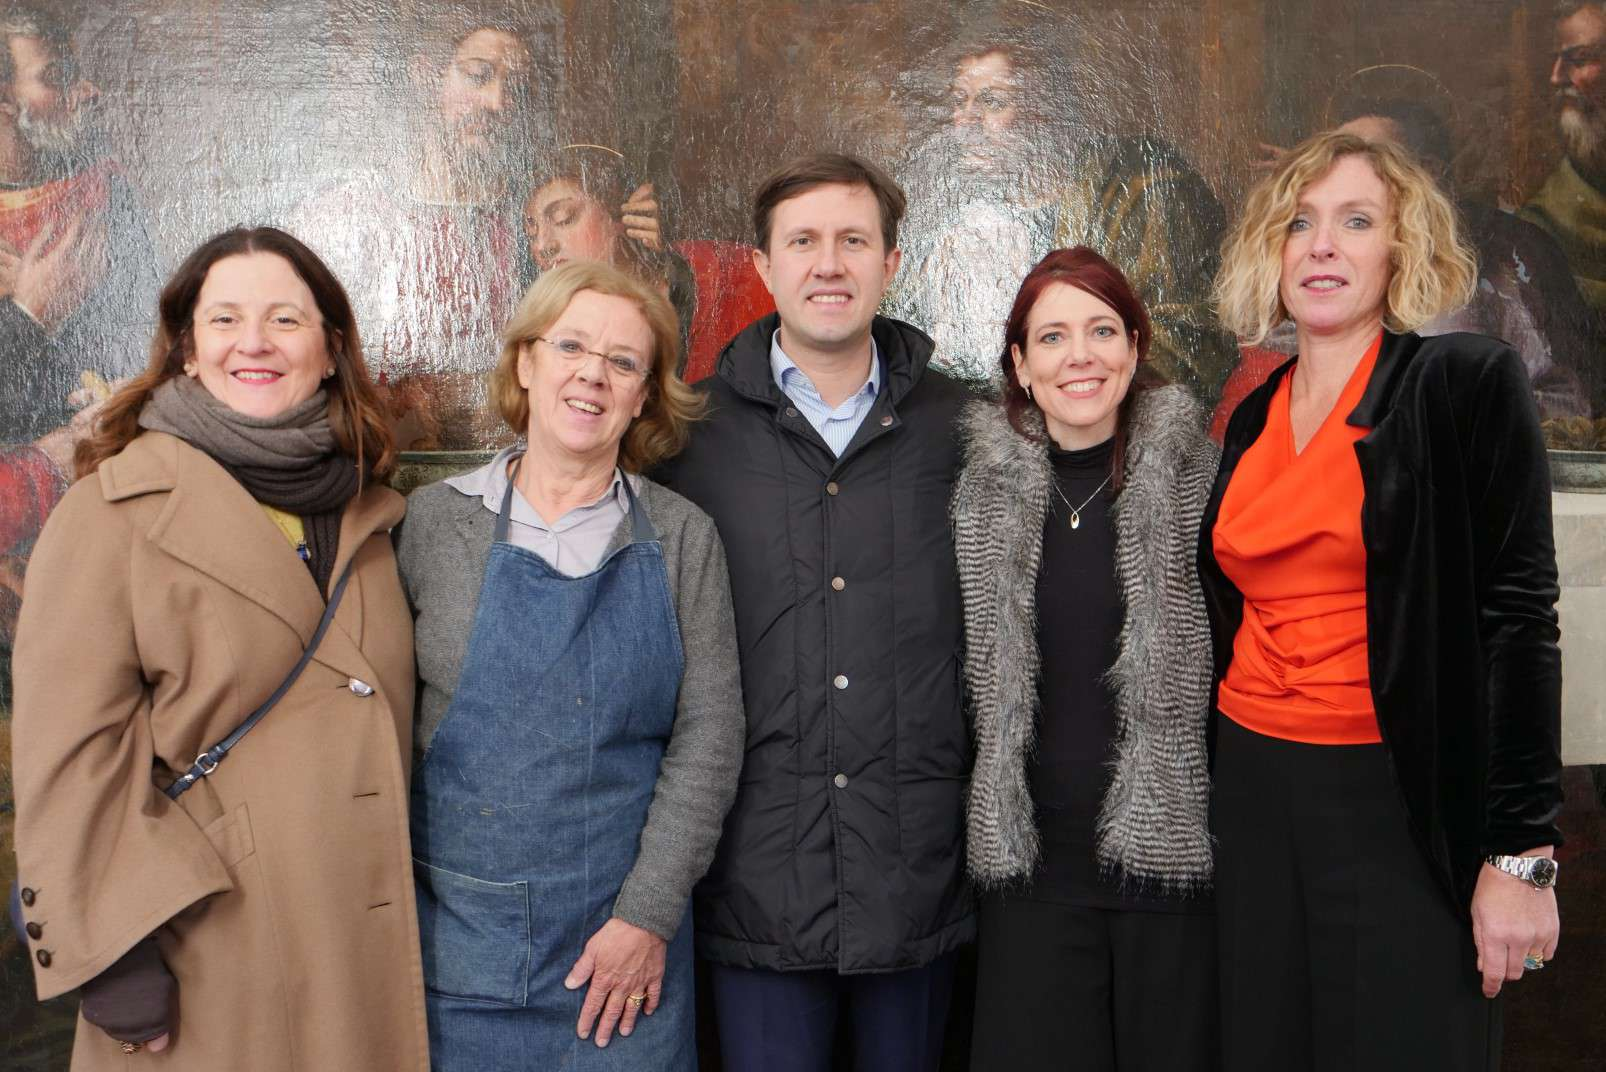 Last Supper by Plautilla Nelli - Adopt an Apostle - Advancing Women Artists with Florence Mayor Dario Nardella and Vice Mayor Cristina Giachi